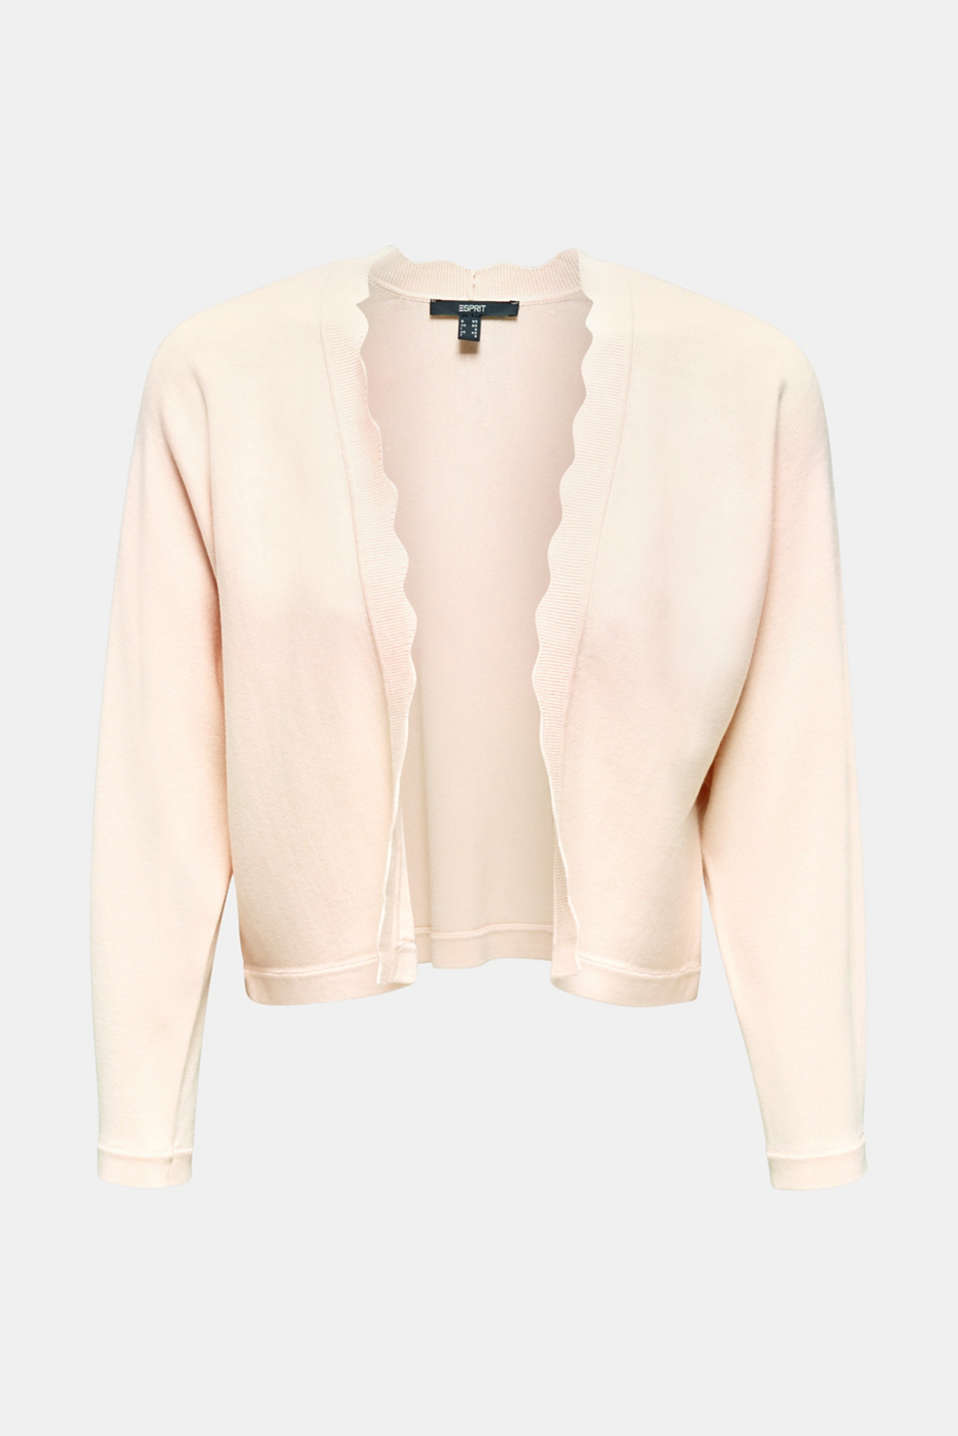 Fine-knit bolero with a scalloped edge, PASTEL PINK, detail image number 6